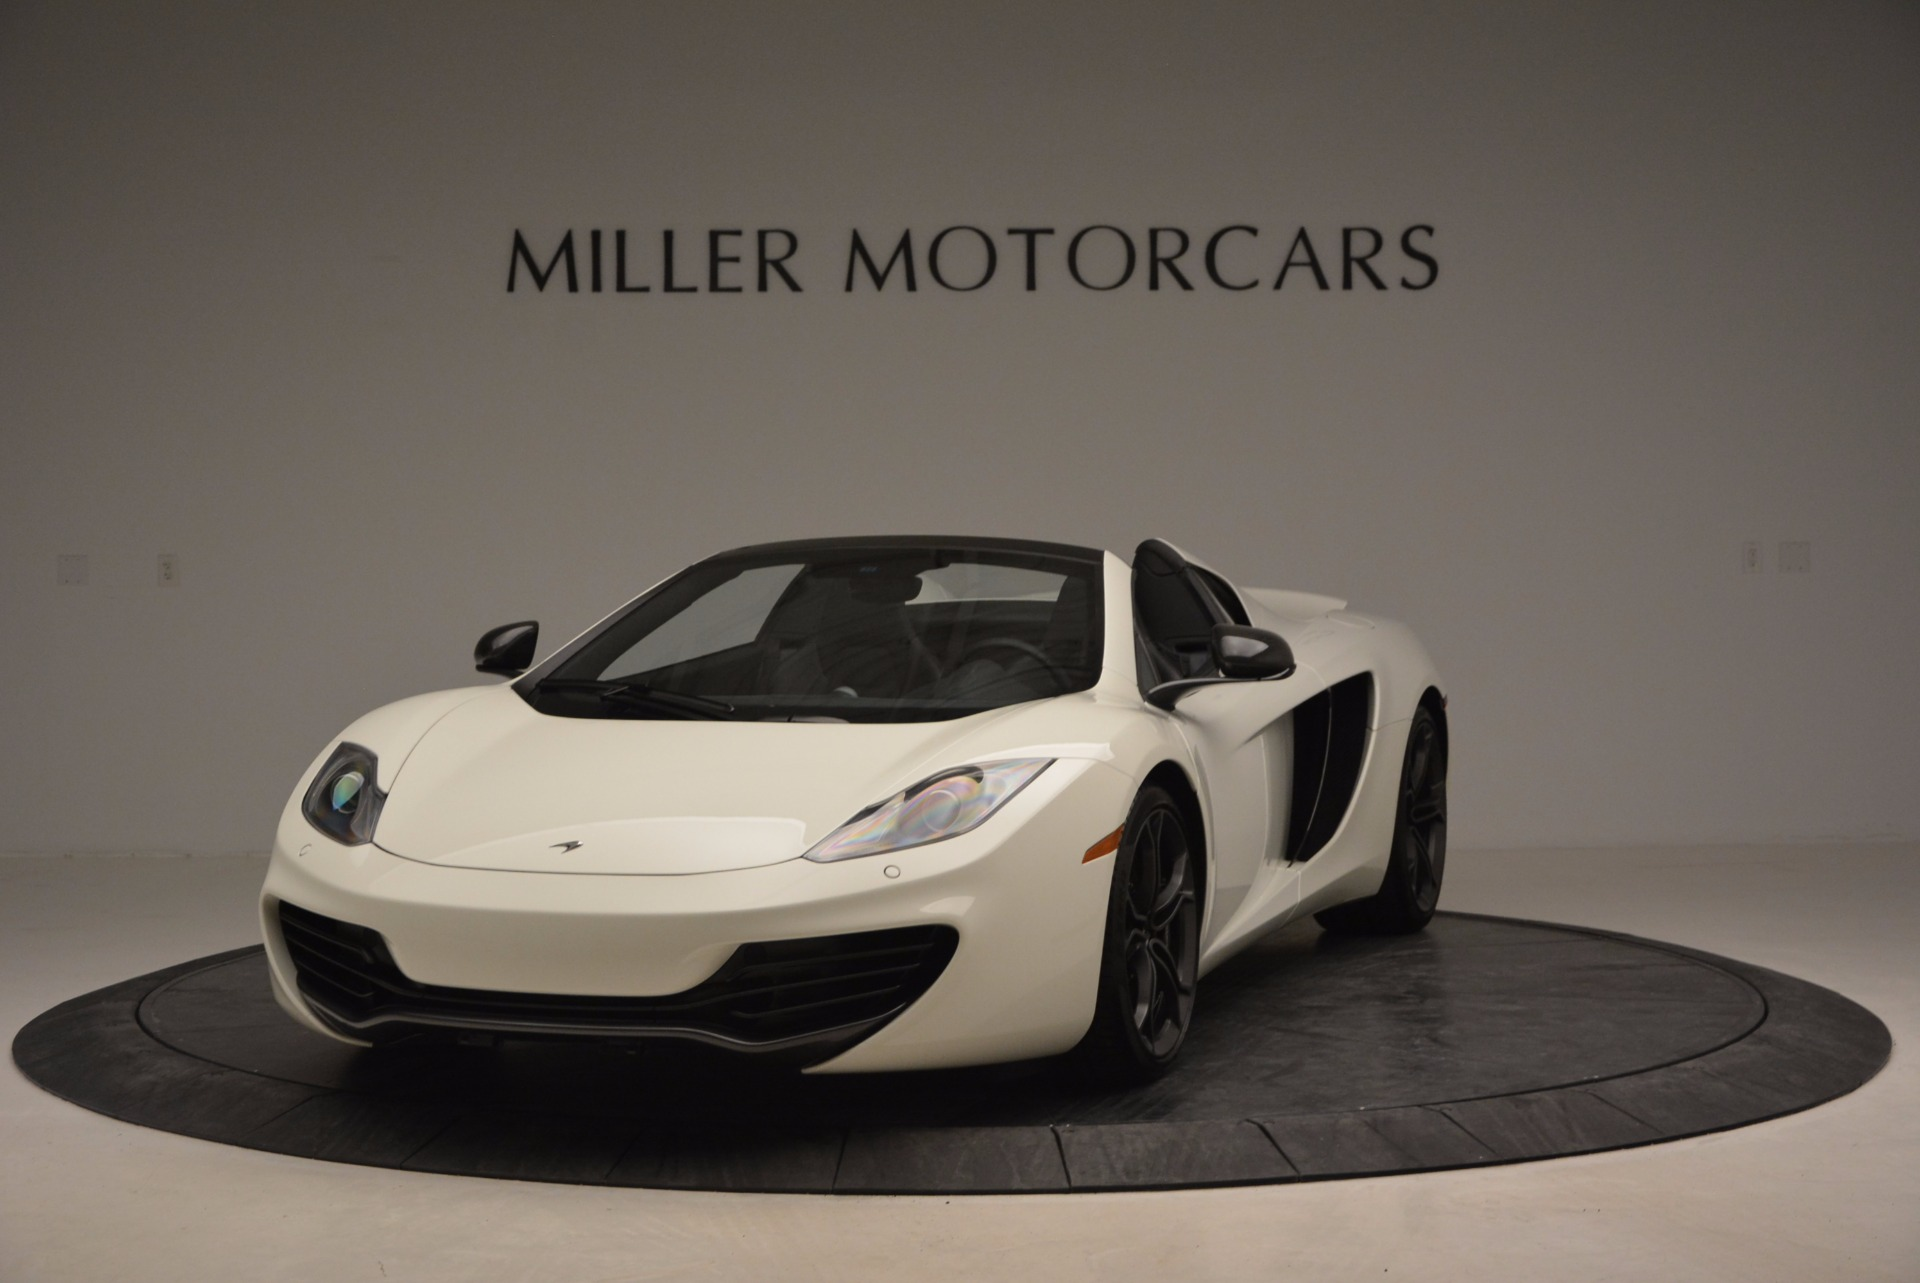 Used 2014 McLaren MP4-12C Spider for sale Sold at McLaren Greenwich in Greenwich CT 06830 1